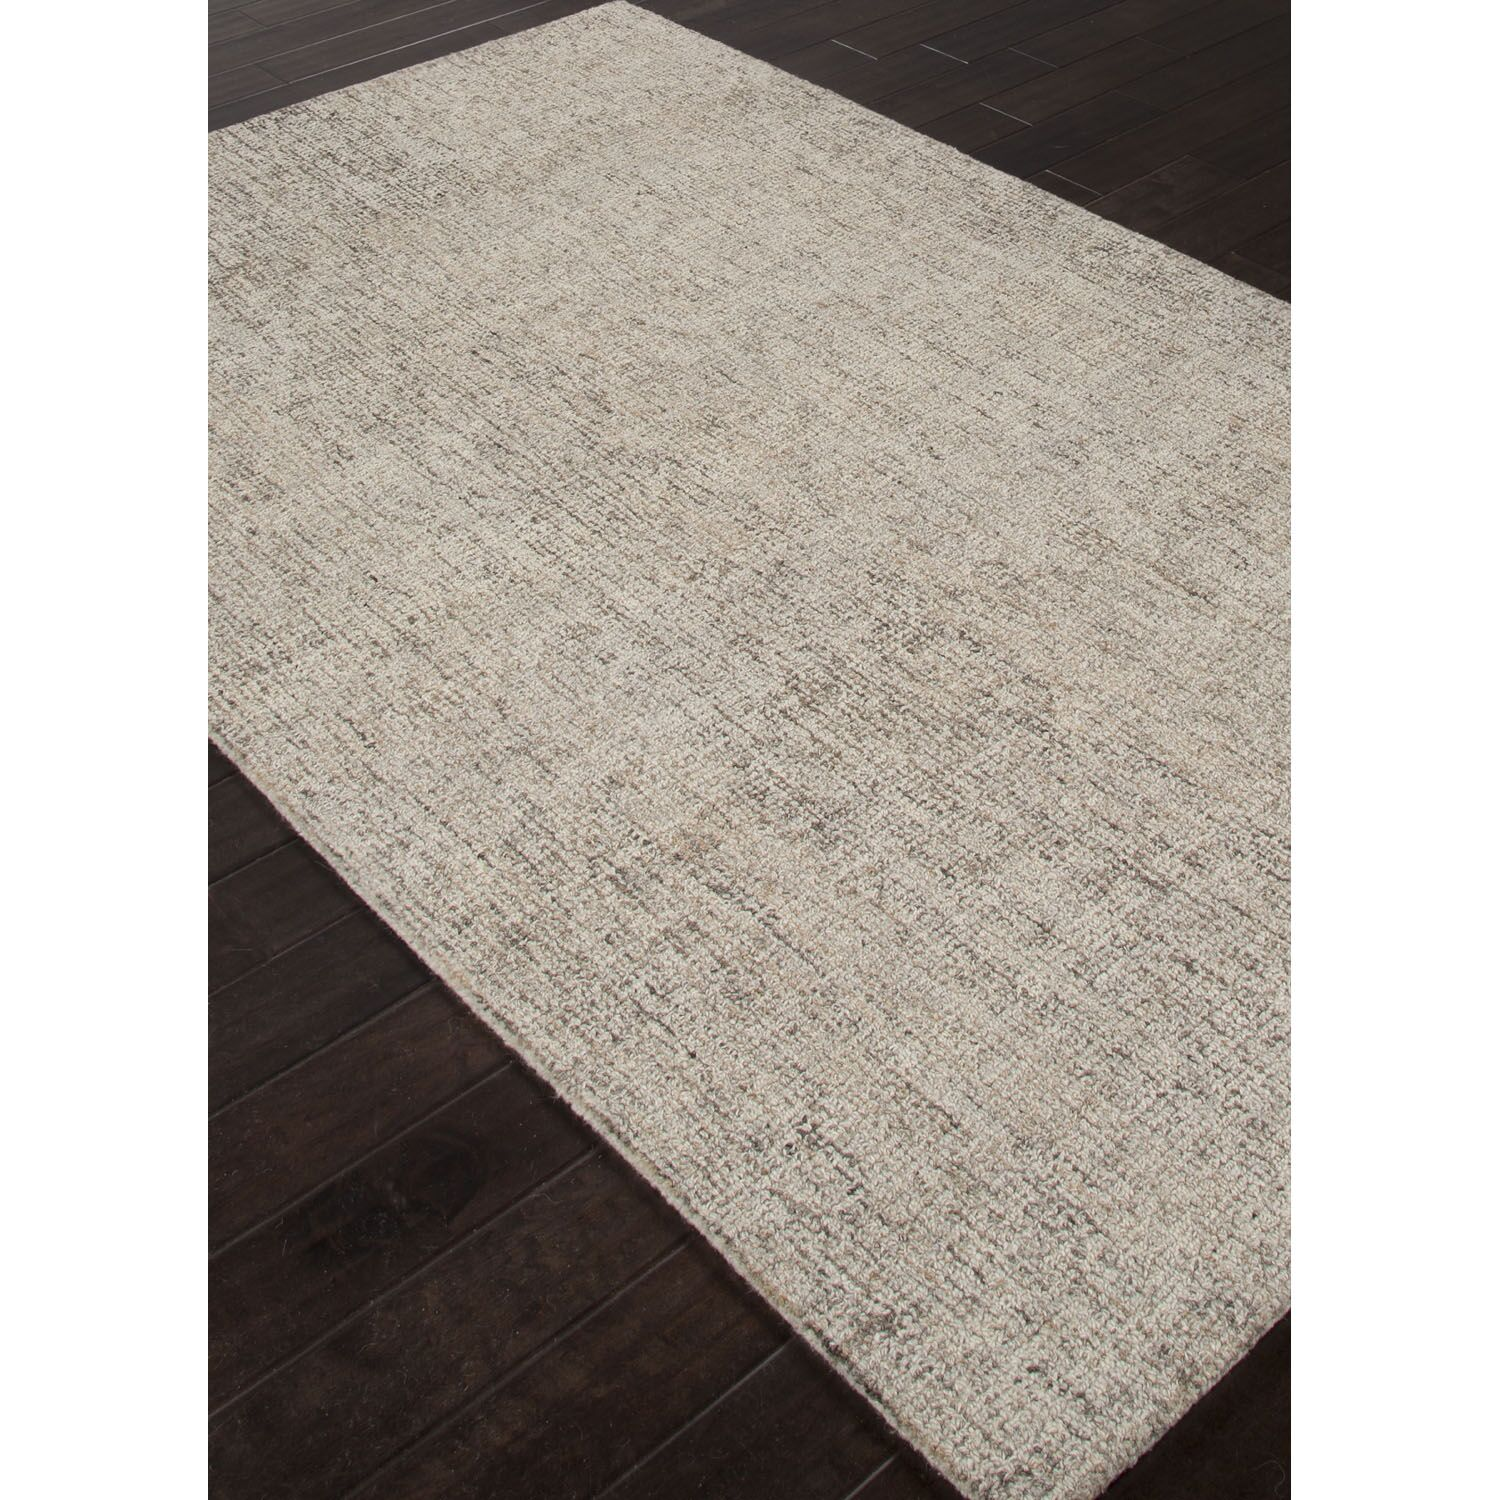 California Bay Hand Tufted Wool Ivory/Gray Area Rug Rug Size: Runner 2'6